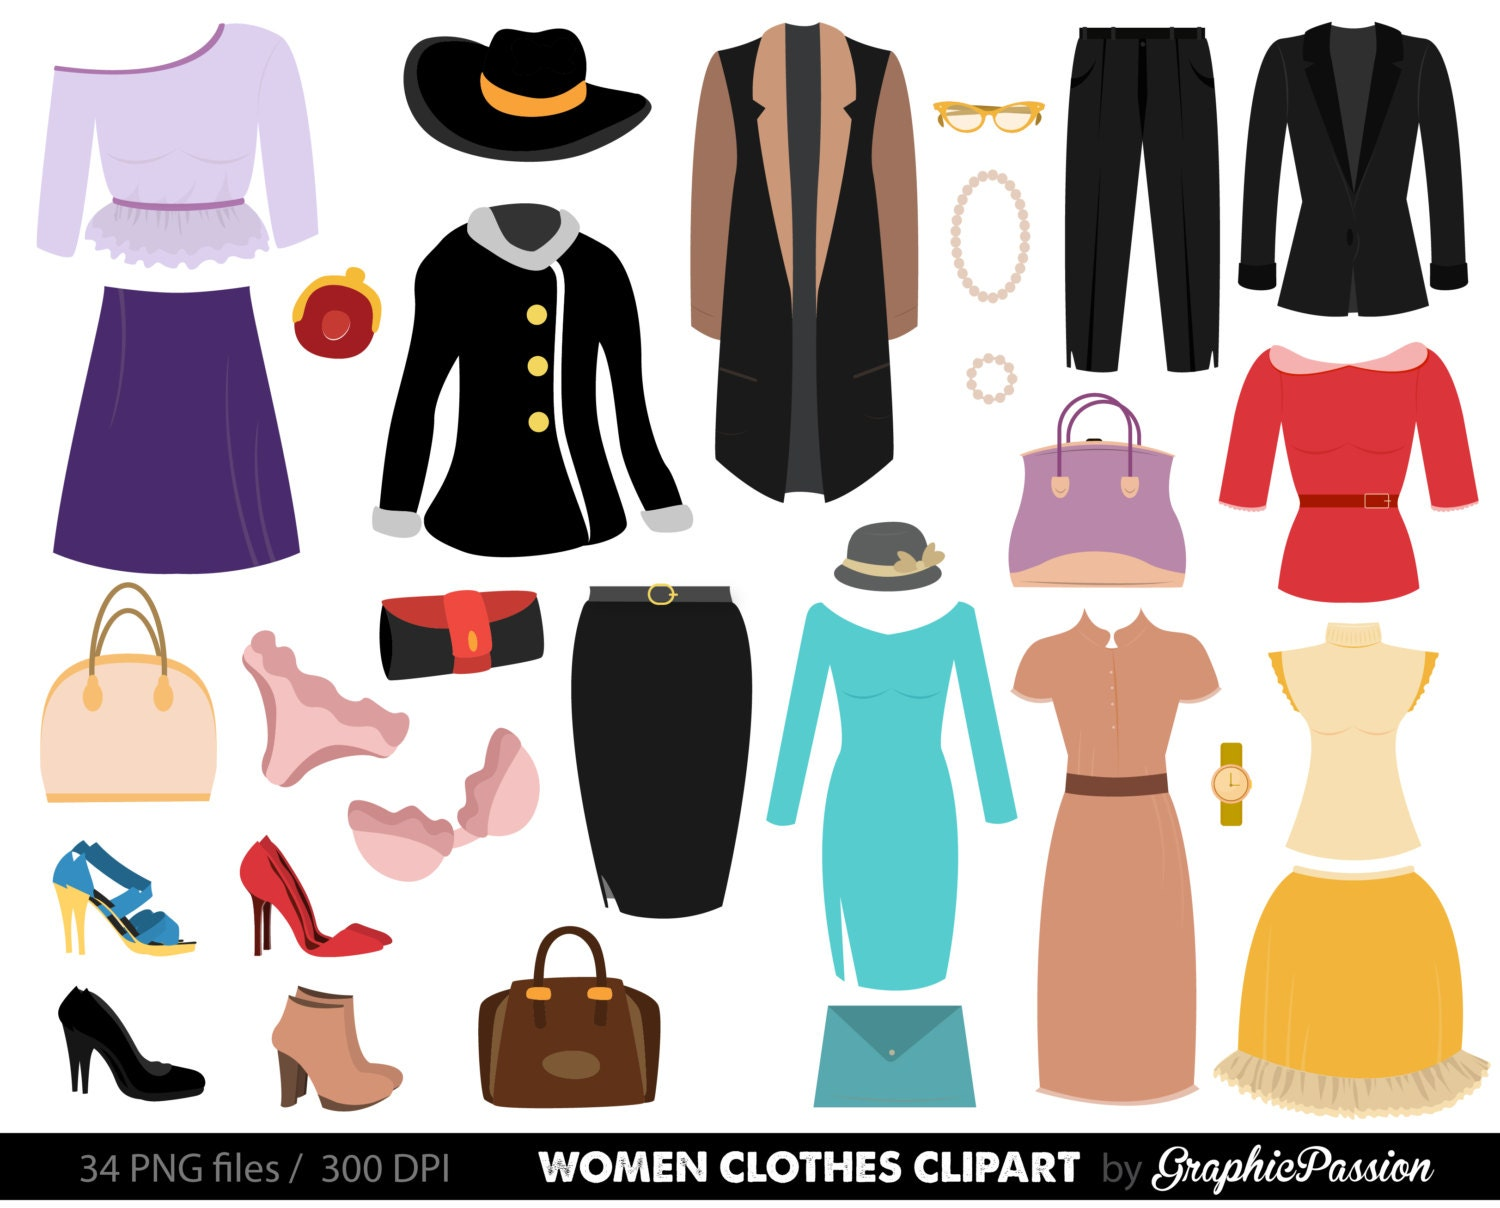 clipart women's clothing - photo #9